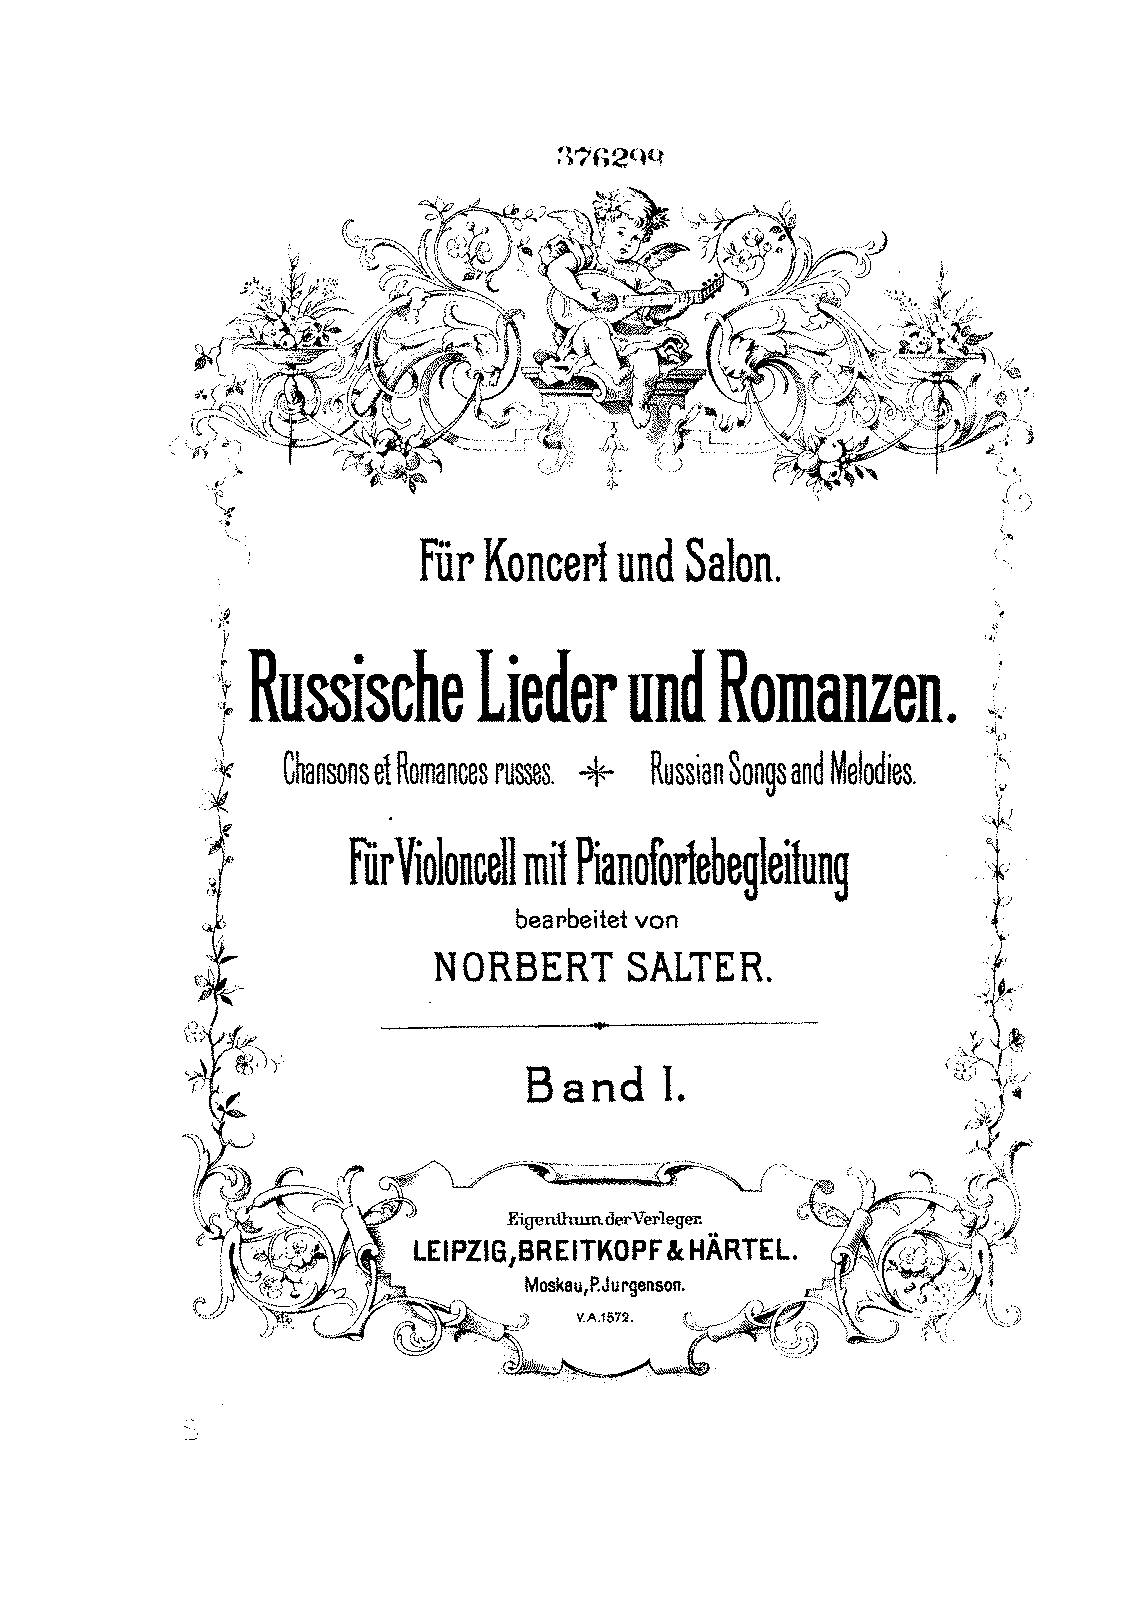 PMLP133585-Moniuszko - Erwartung Expectation romance (Salter) for Cello and Piano score.pdf